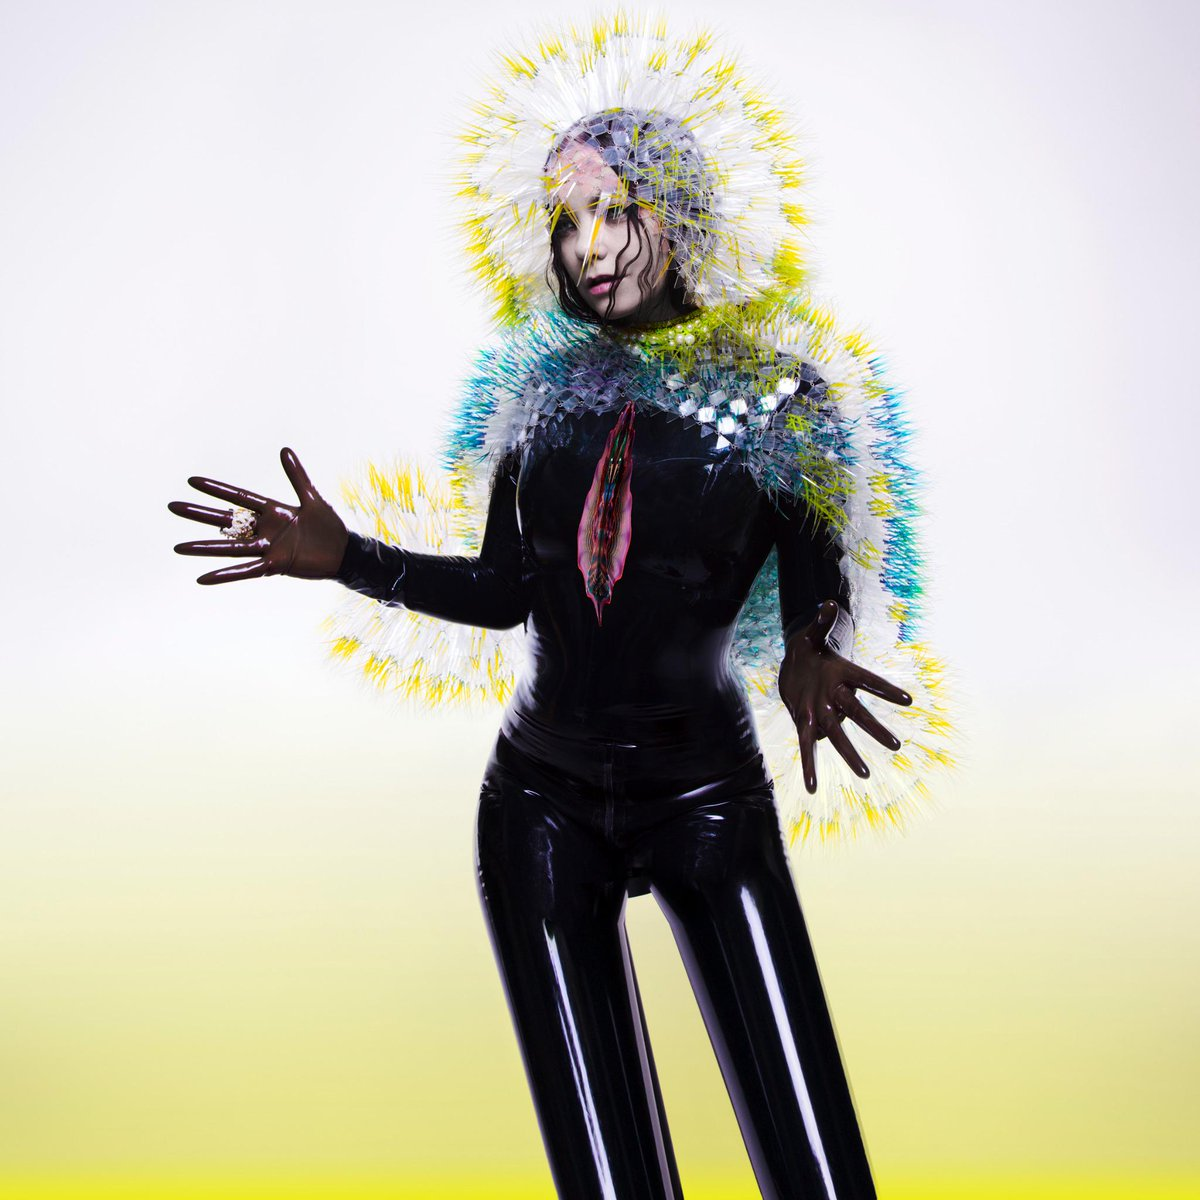 dear folks & my music supporters : vulnicura will be rolling out over the next 24 hours !! http://t.co/33s1OCgygW http://t.co/0HzE3F4qC4